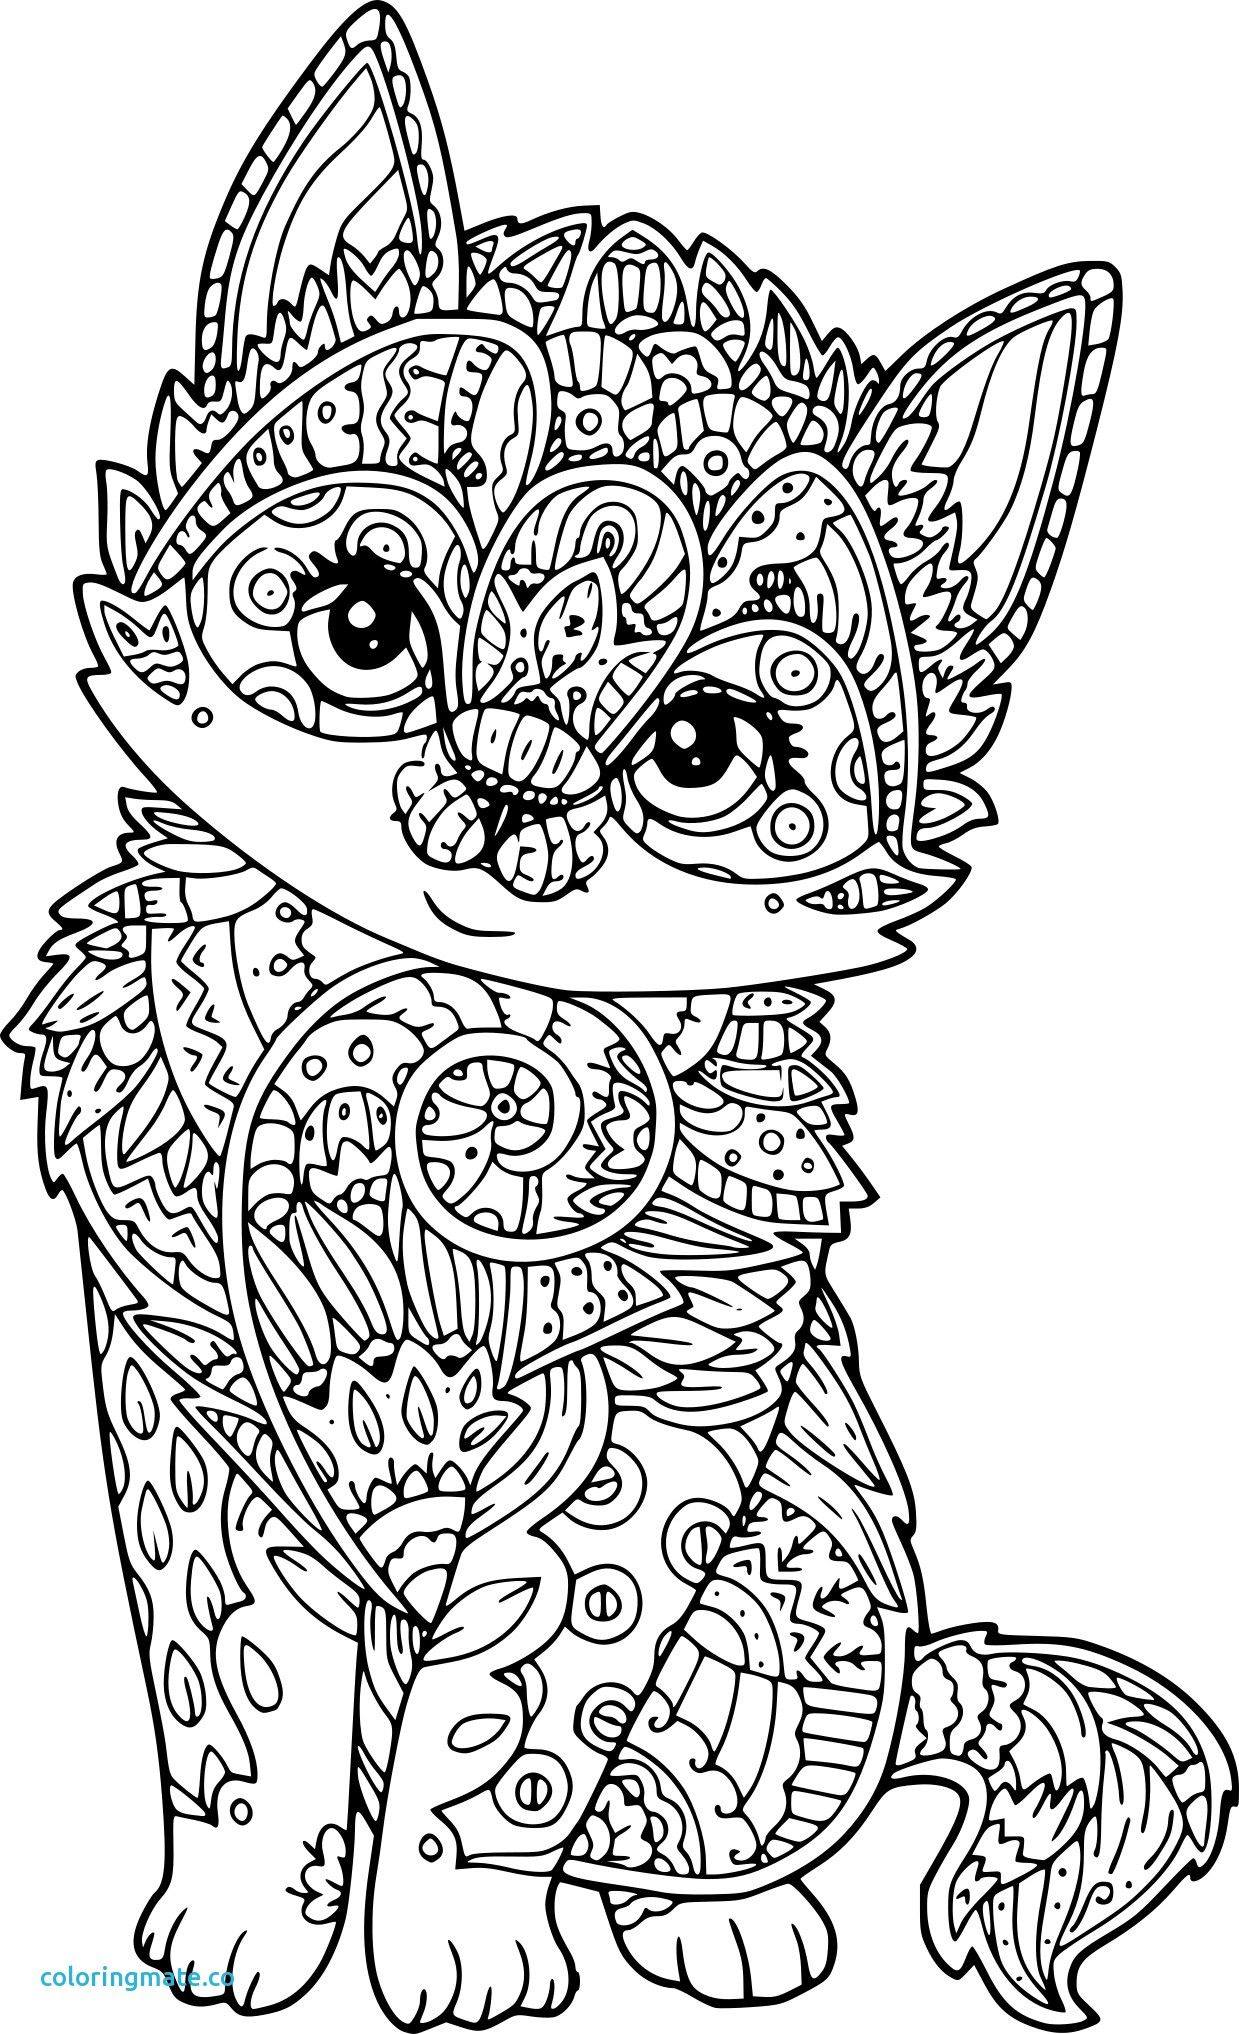 Coloriage mandala chat papillon fresh coloriage chat - Coloriage anti stress a imprimer ...